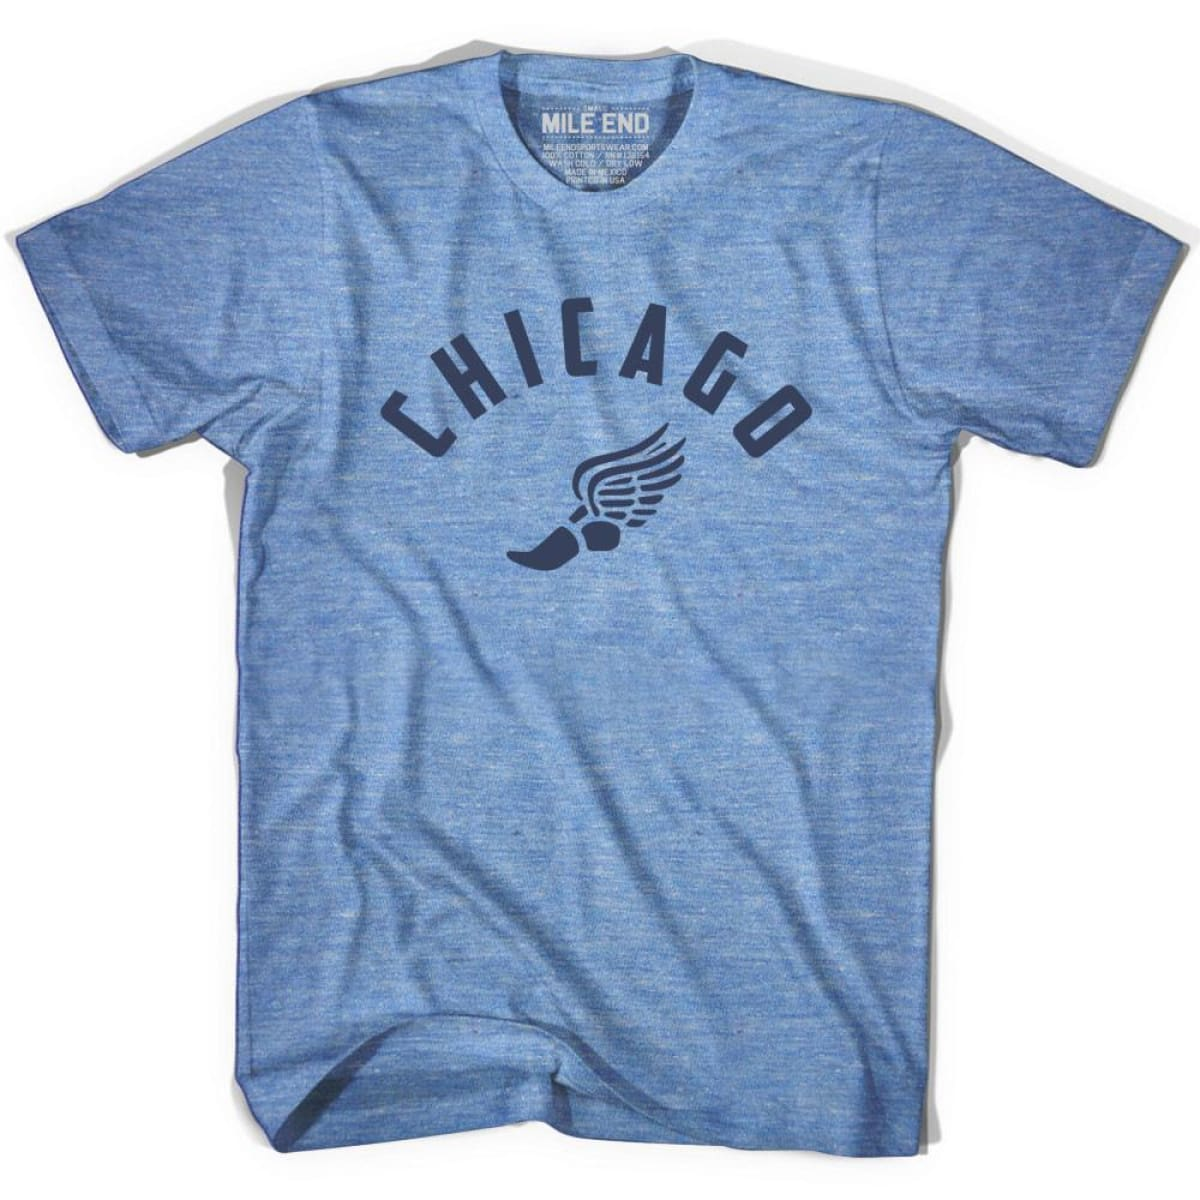 Chicago Track T-shirt - Athletic Blue / Adult X-Small - Mile End Track